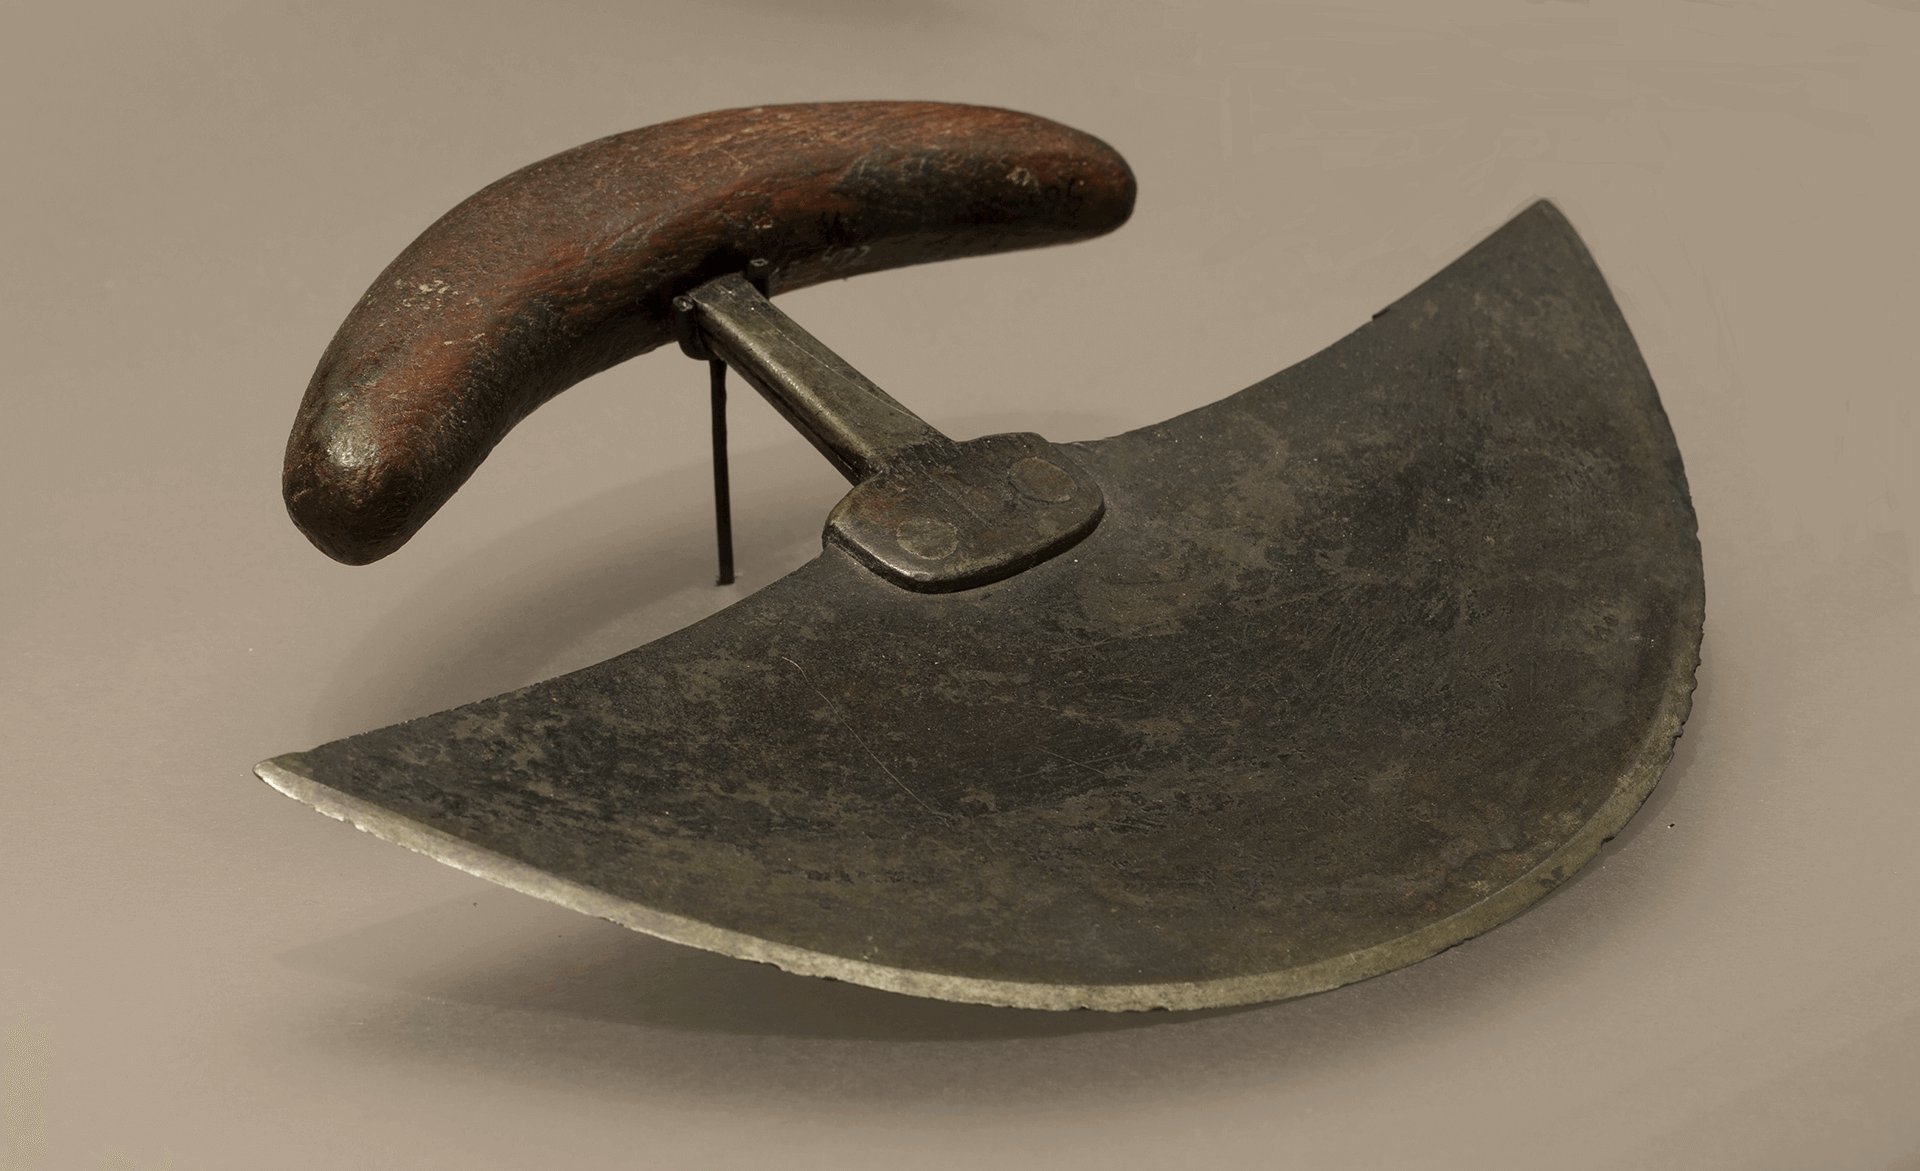 Image of an ulu, a traditional knife used by Inuit women